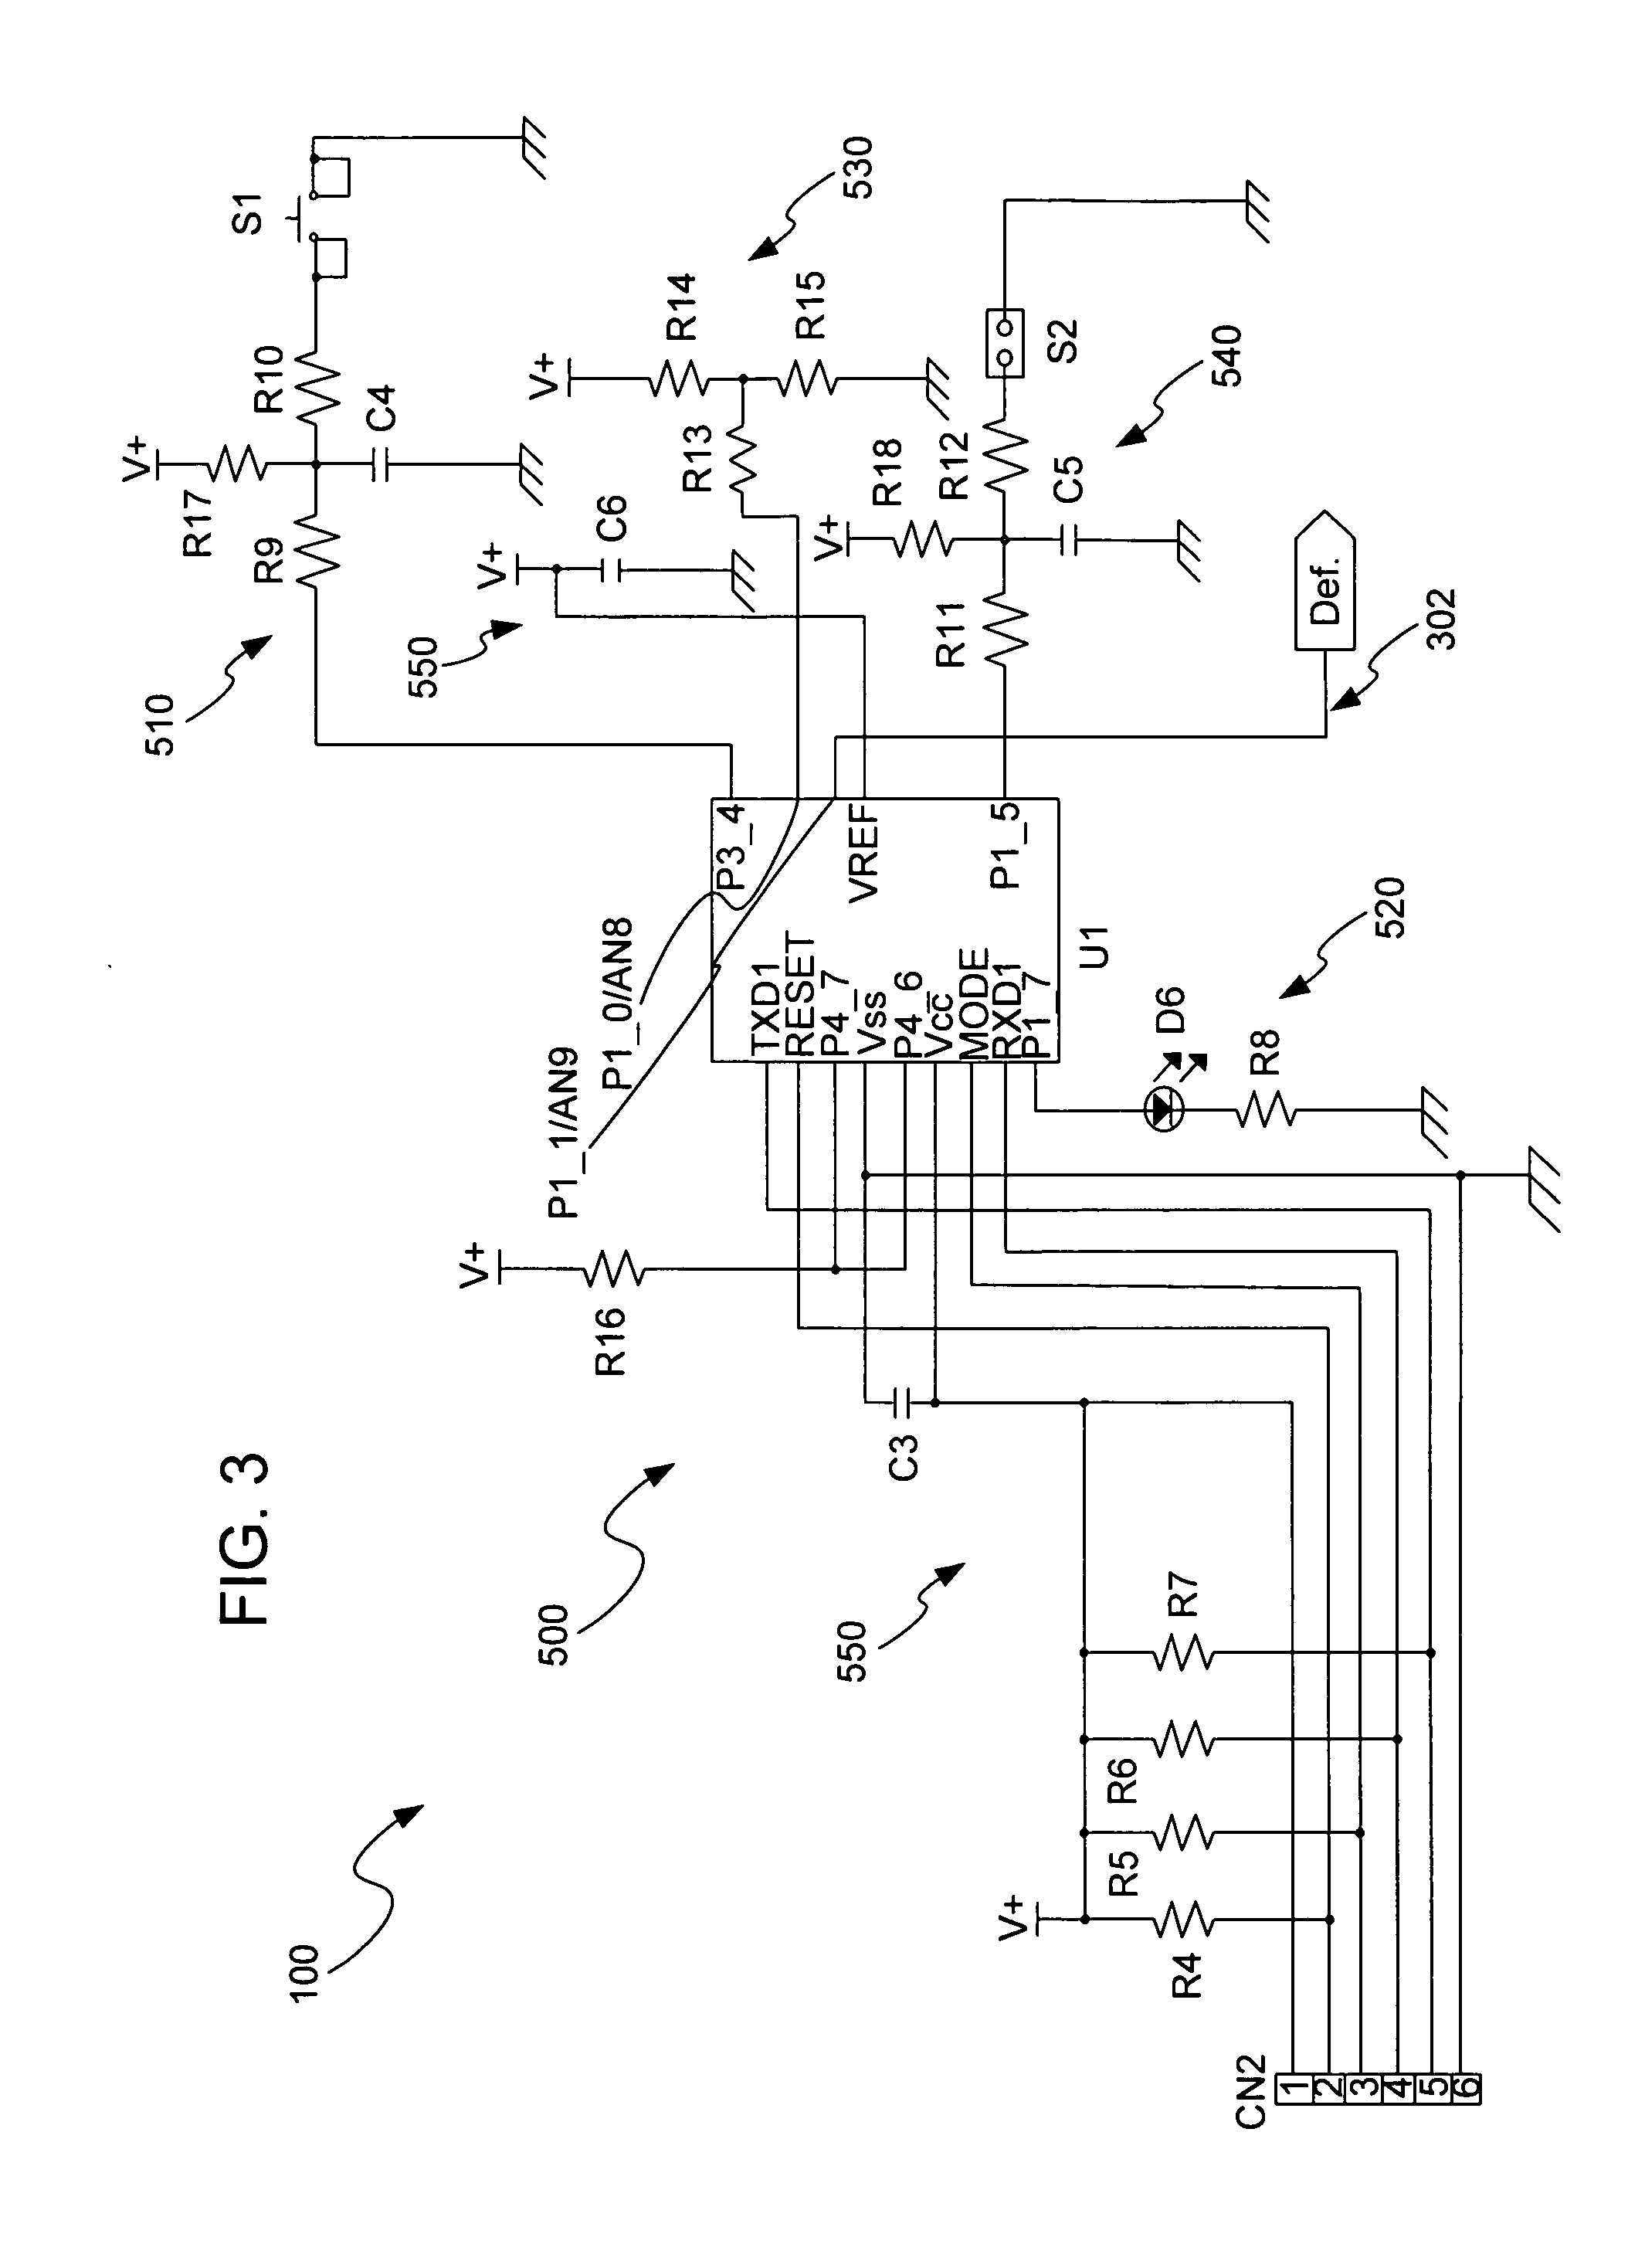 luxaire air conditioning wiring diagram